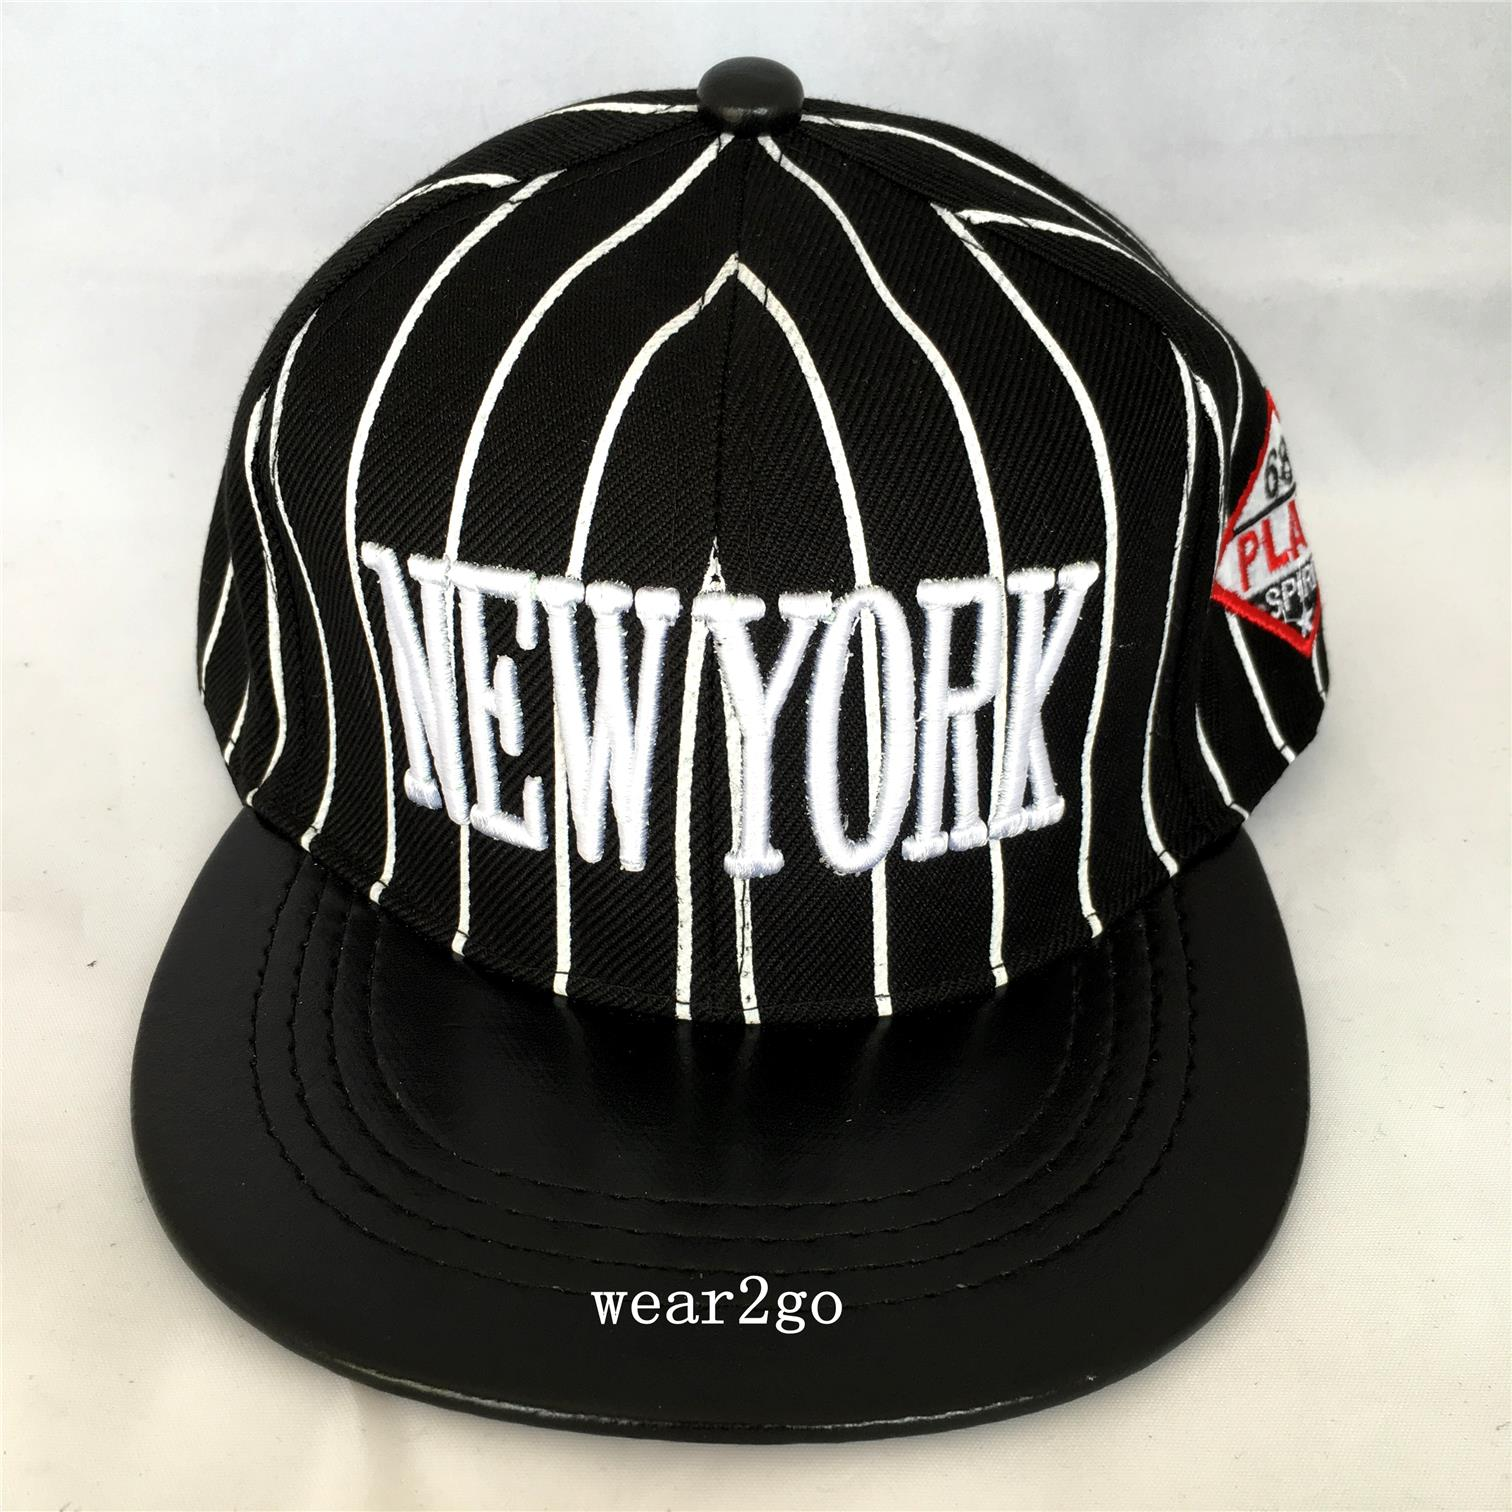 NY NEW YORK Kids Snapback Cap in Black Color